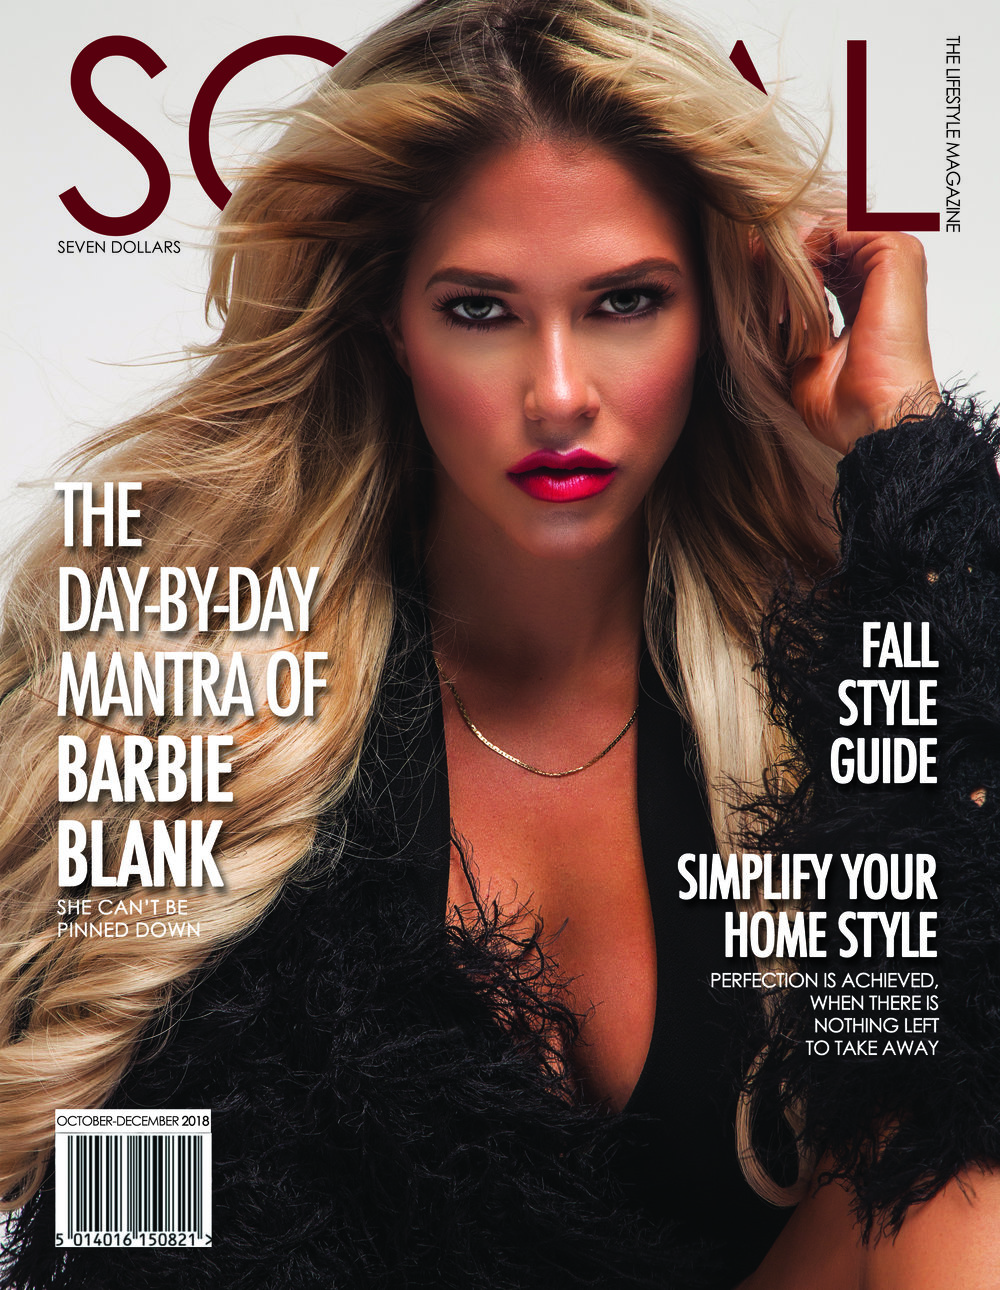 BARBIE COVER.JPG